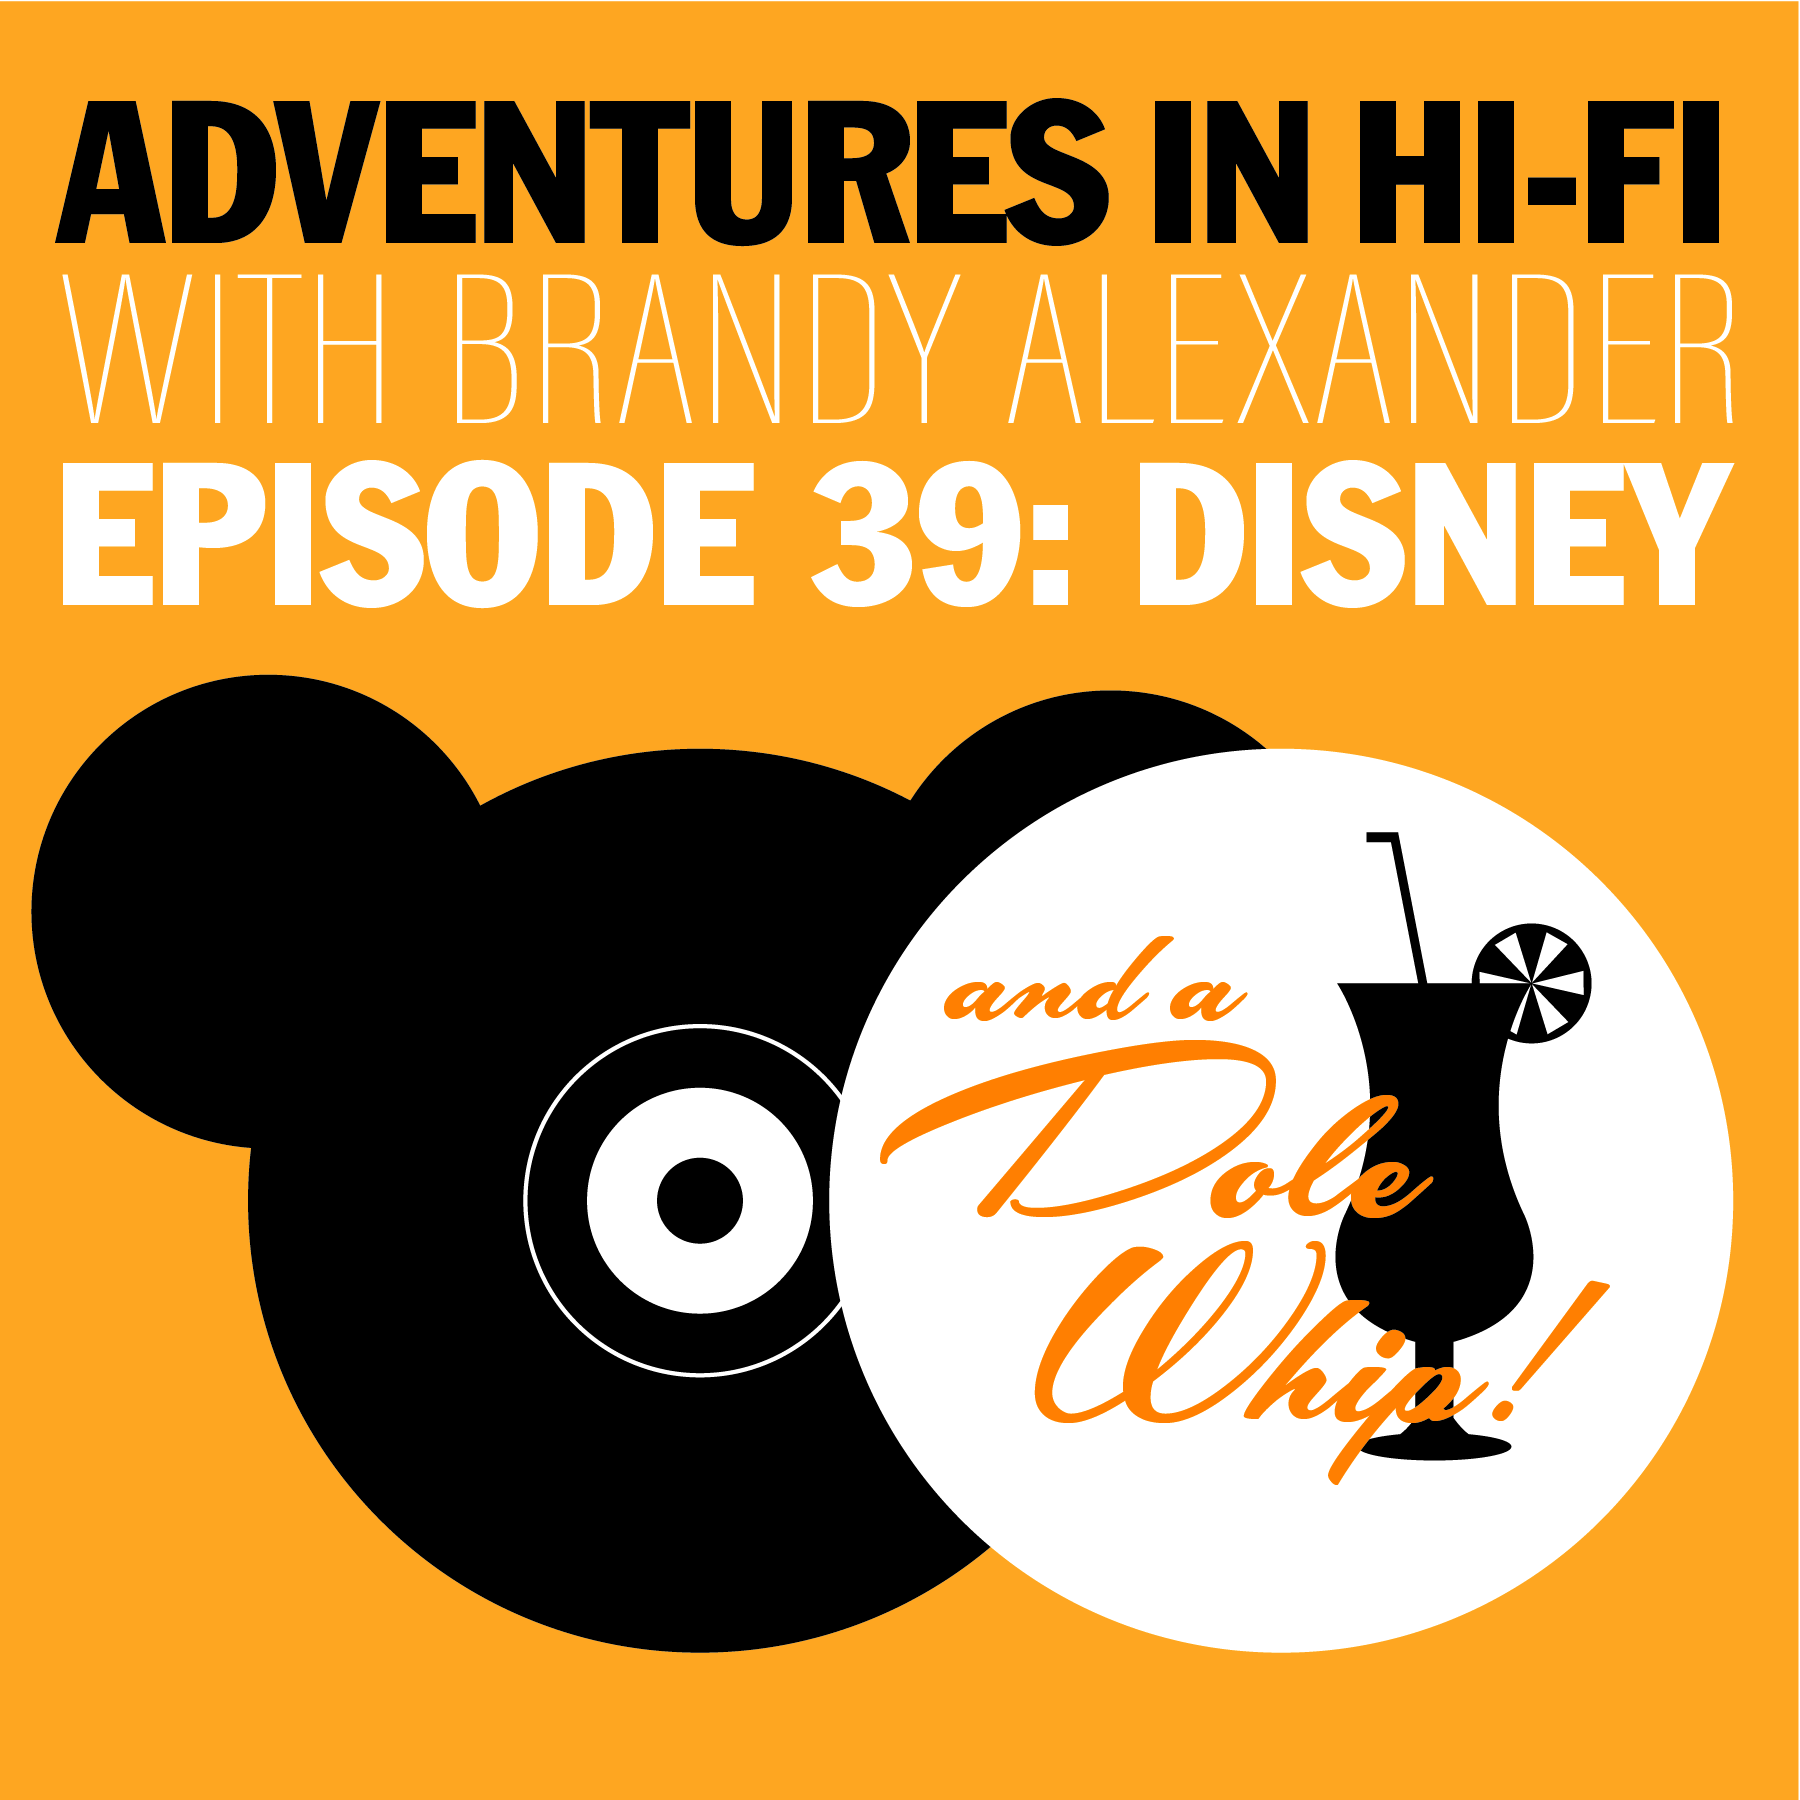 Art for Thanks for Listening to Adventures in Hi-Fi! by Brandy Alexander